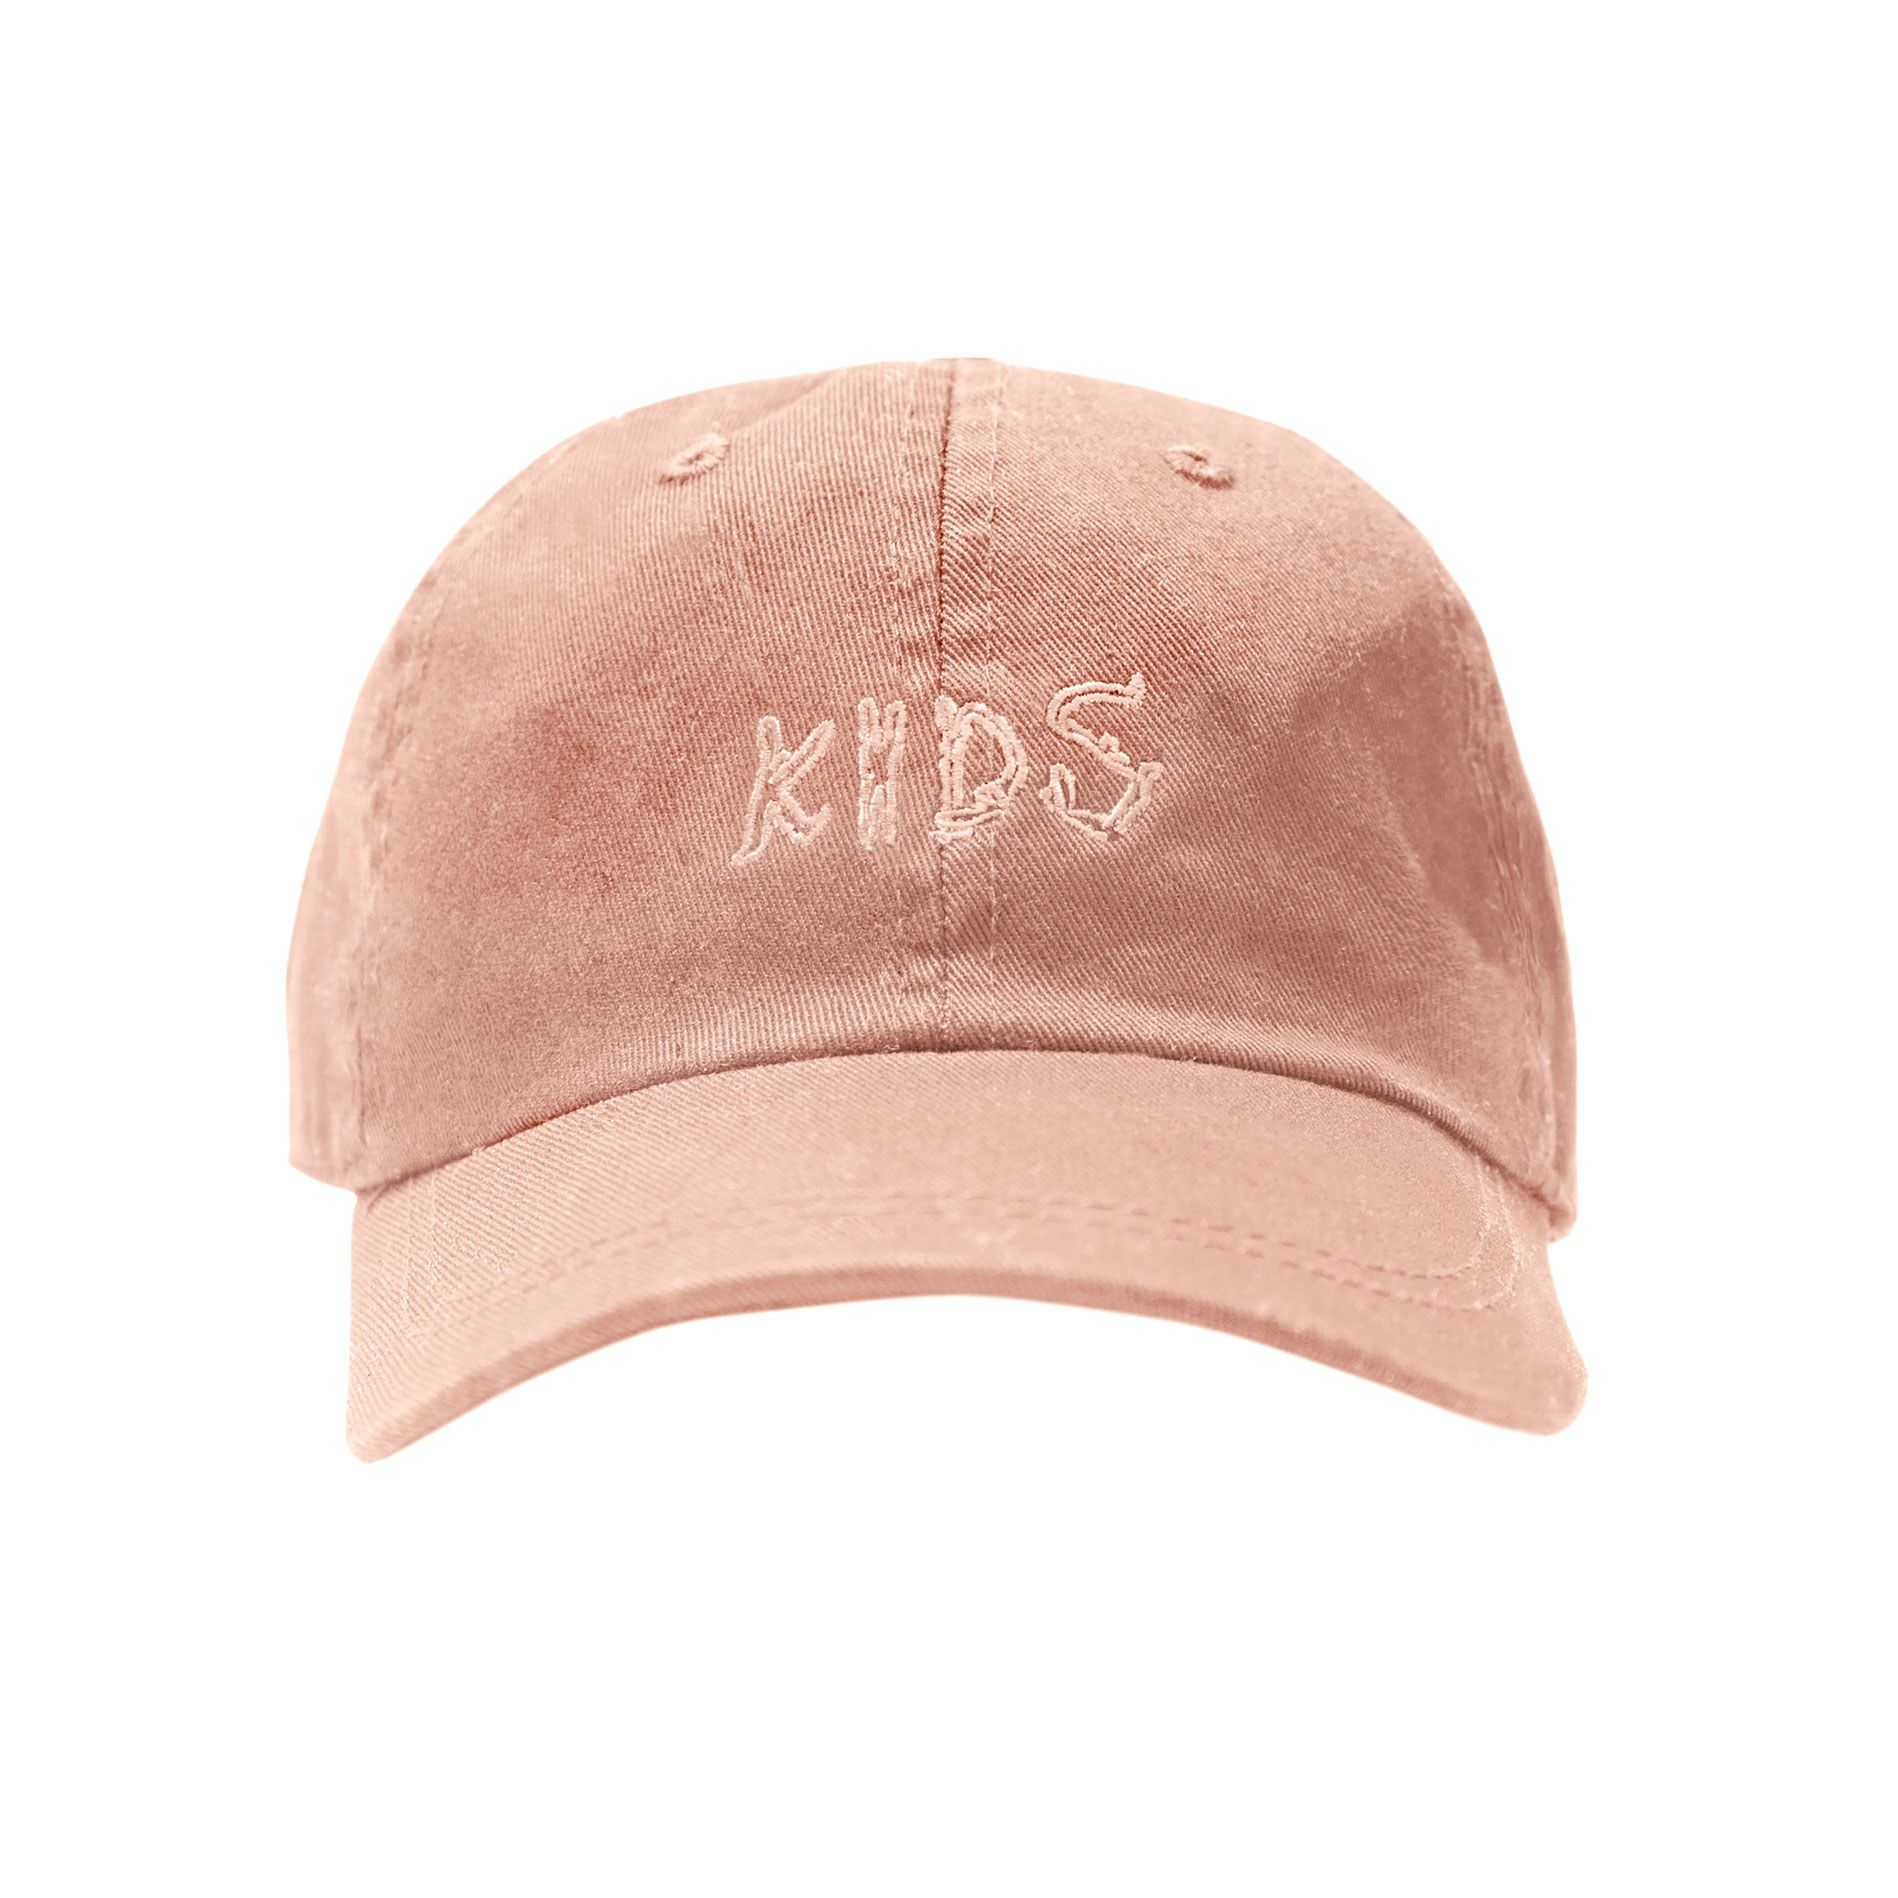 3dc2c4312 Kim Kardashian West and Kanye West Launch Their Kids Supply Clothing Line  for the Littlest Yeezy Fans